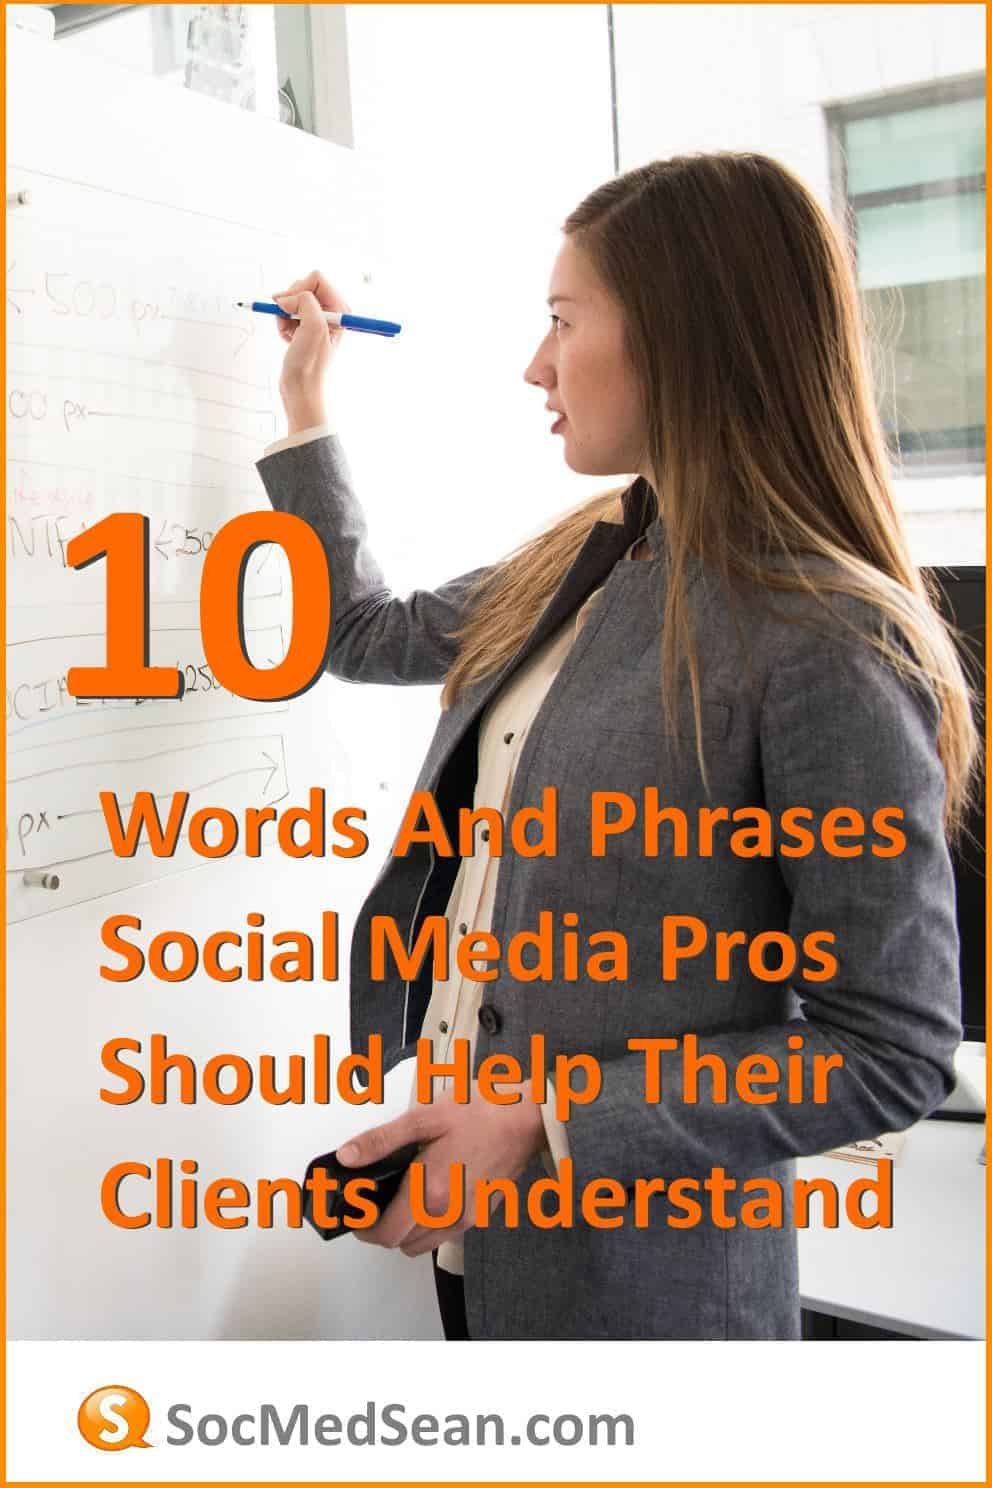 10 words and phrases that social media pros should help their clients understand